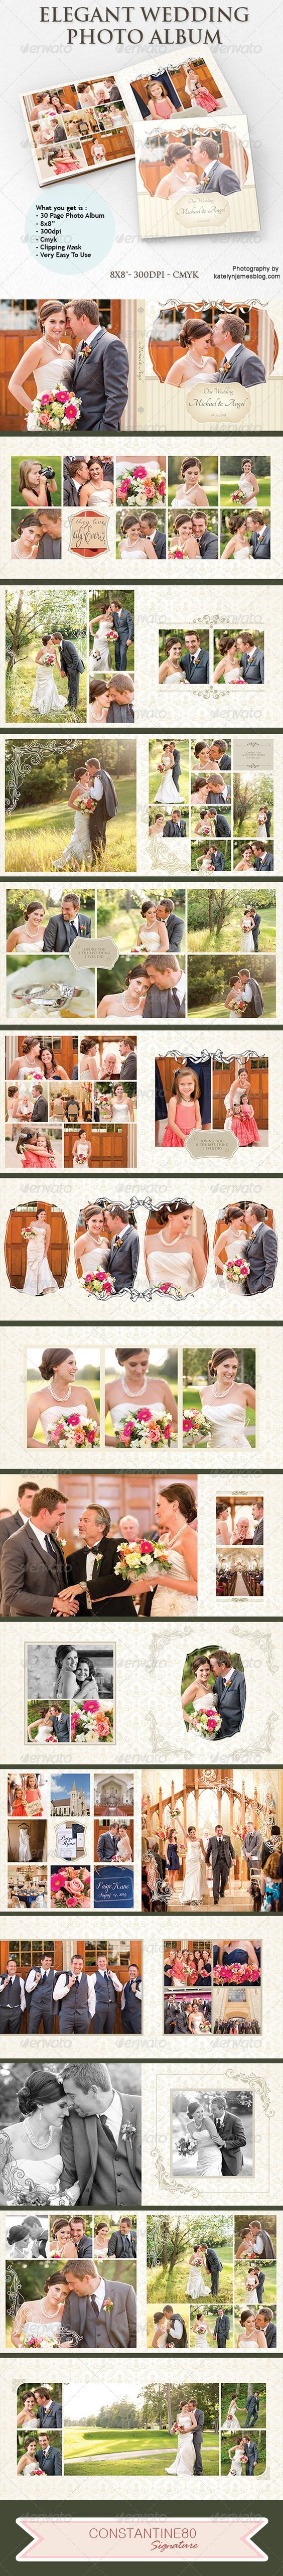 """Elegant Wedding Photo Album  #GraphicRiver         What you get is :   Photo Album 8""""x8"""" Color mode: CMYK Resolution: 300 DPI Total Dimensions: 4838×2438px   Total is 15 items    —-—-—-—-- Fonts used: Trajan Pro  .myfonts /fonts/adobe/trajan/ Tangerine  .dafont /search.php?q=tangerine      How To Use:put your Picture above layer """">>>PHOTO Created: 1September13 GraphicsFilesIncluded: PhotoshopPSD Layered: Yes MinimumAdobeCSVersion: CS4 PrintDimensions: 8x8 Tags: 10x10 #12x12 #8x8:"""